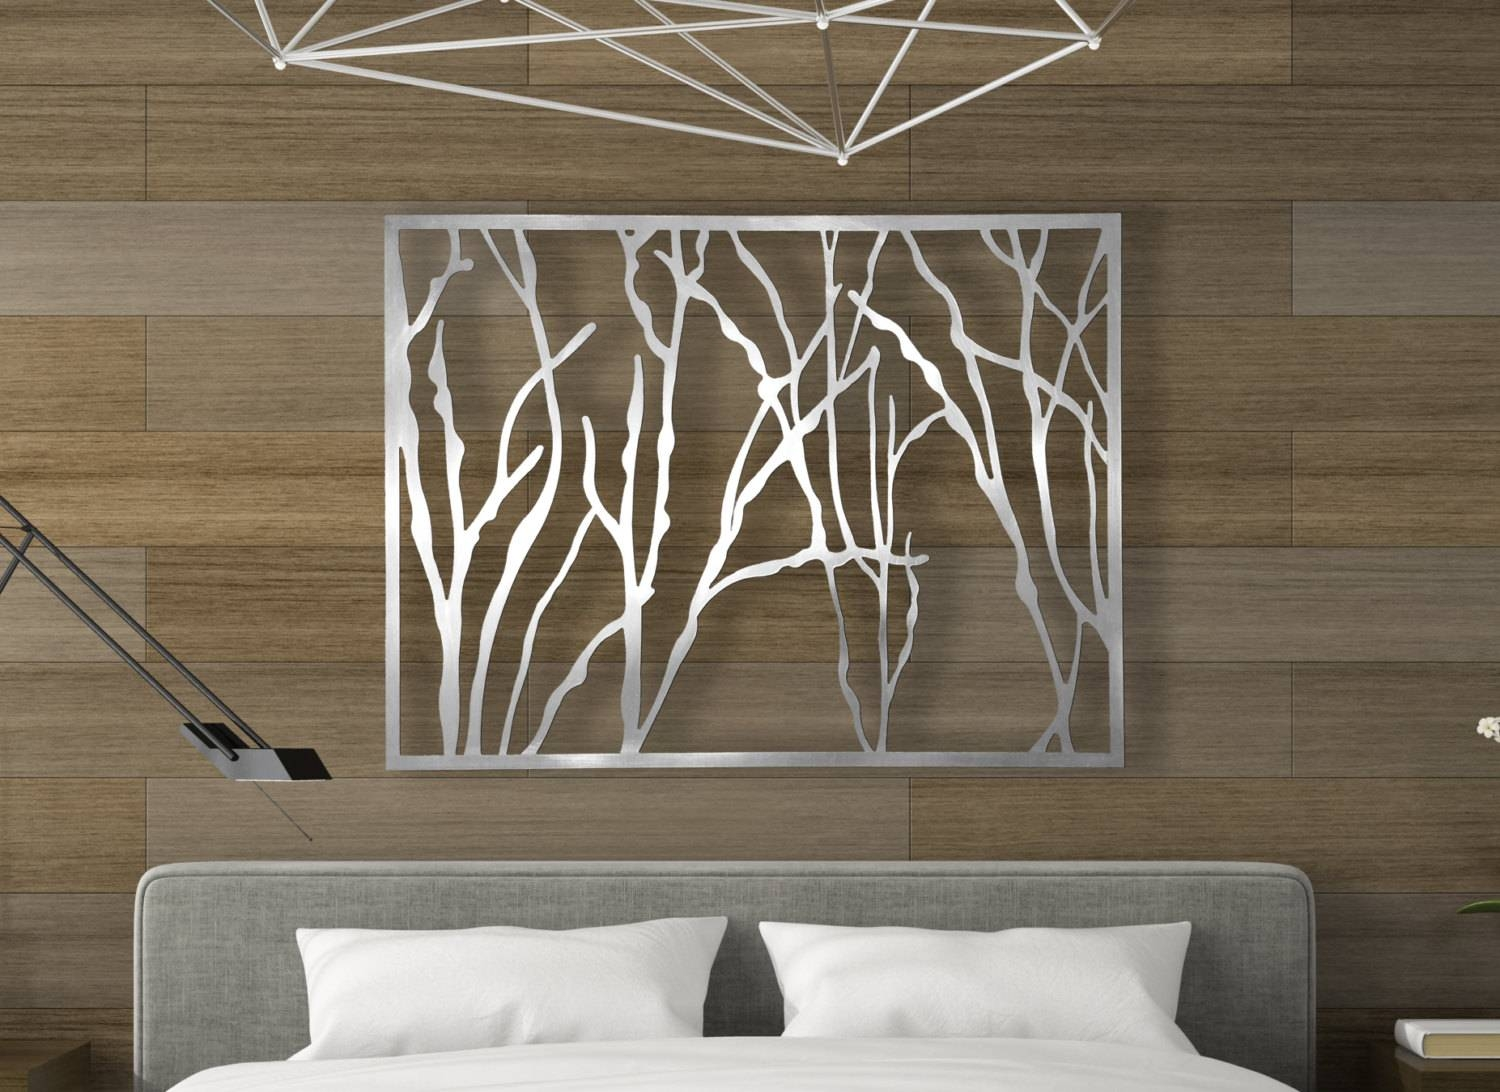 Laser Cut Metal Decorative Wall Art Panel Sculpture For Home Throughout Most Up To Date Outdoor Metal Wall Art Panels (View 3 of 20)